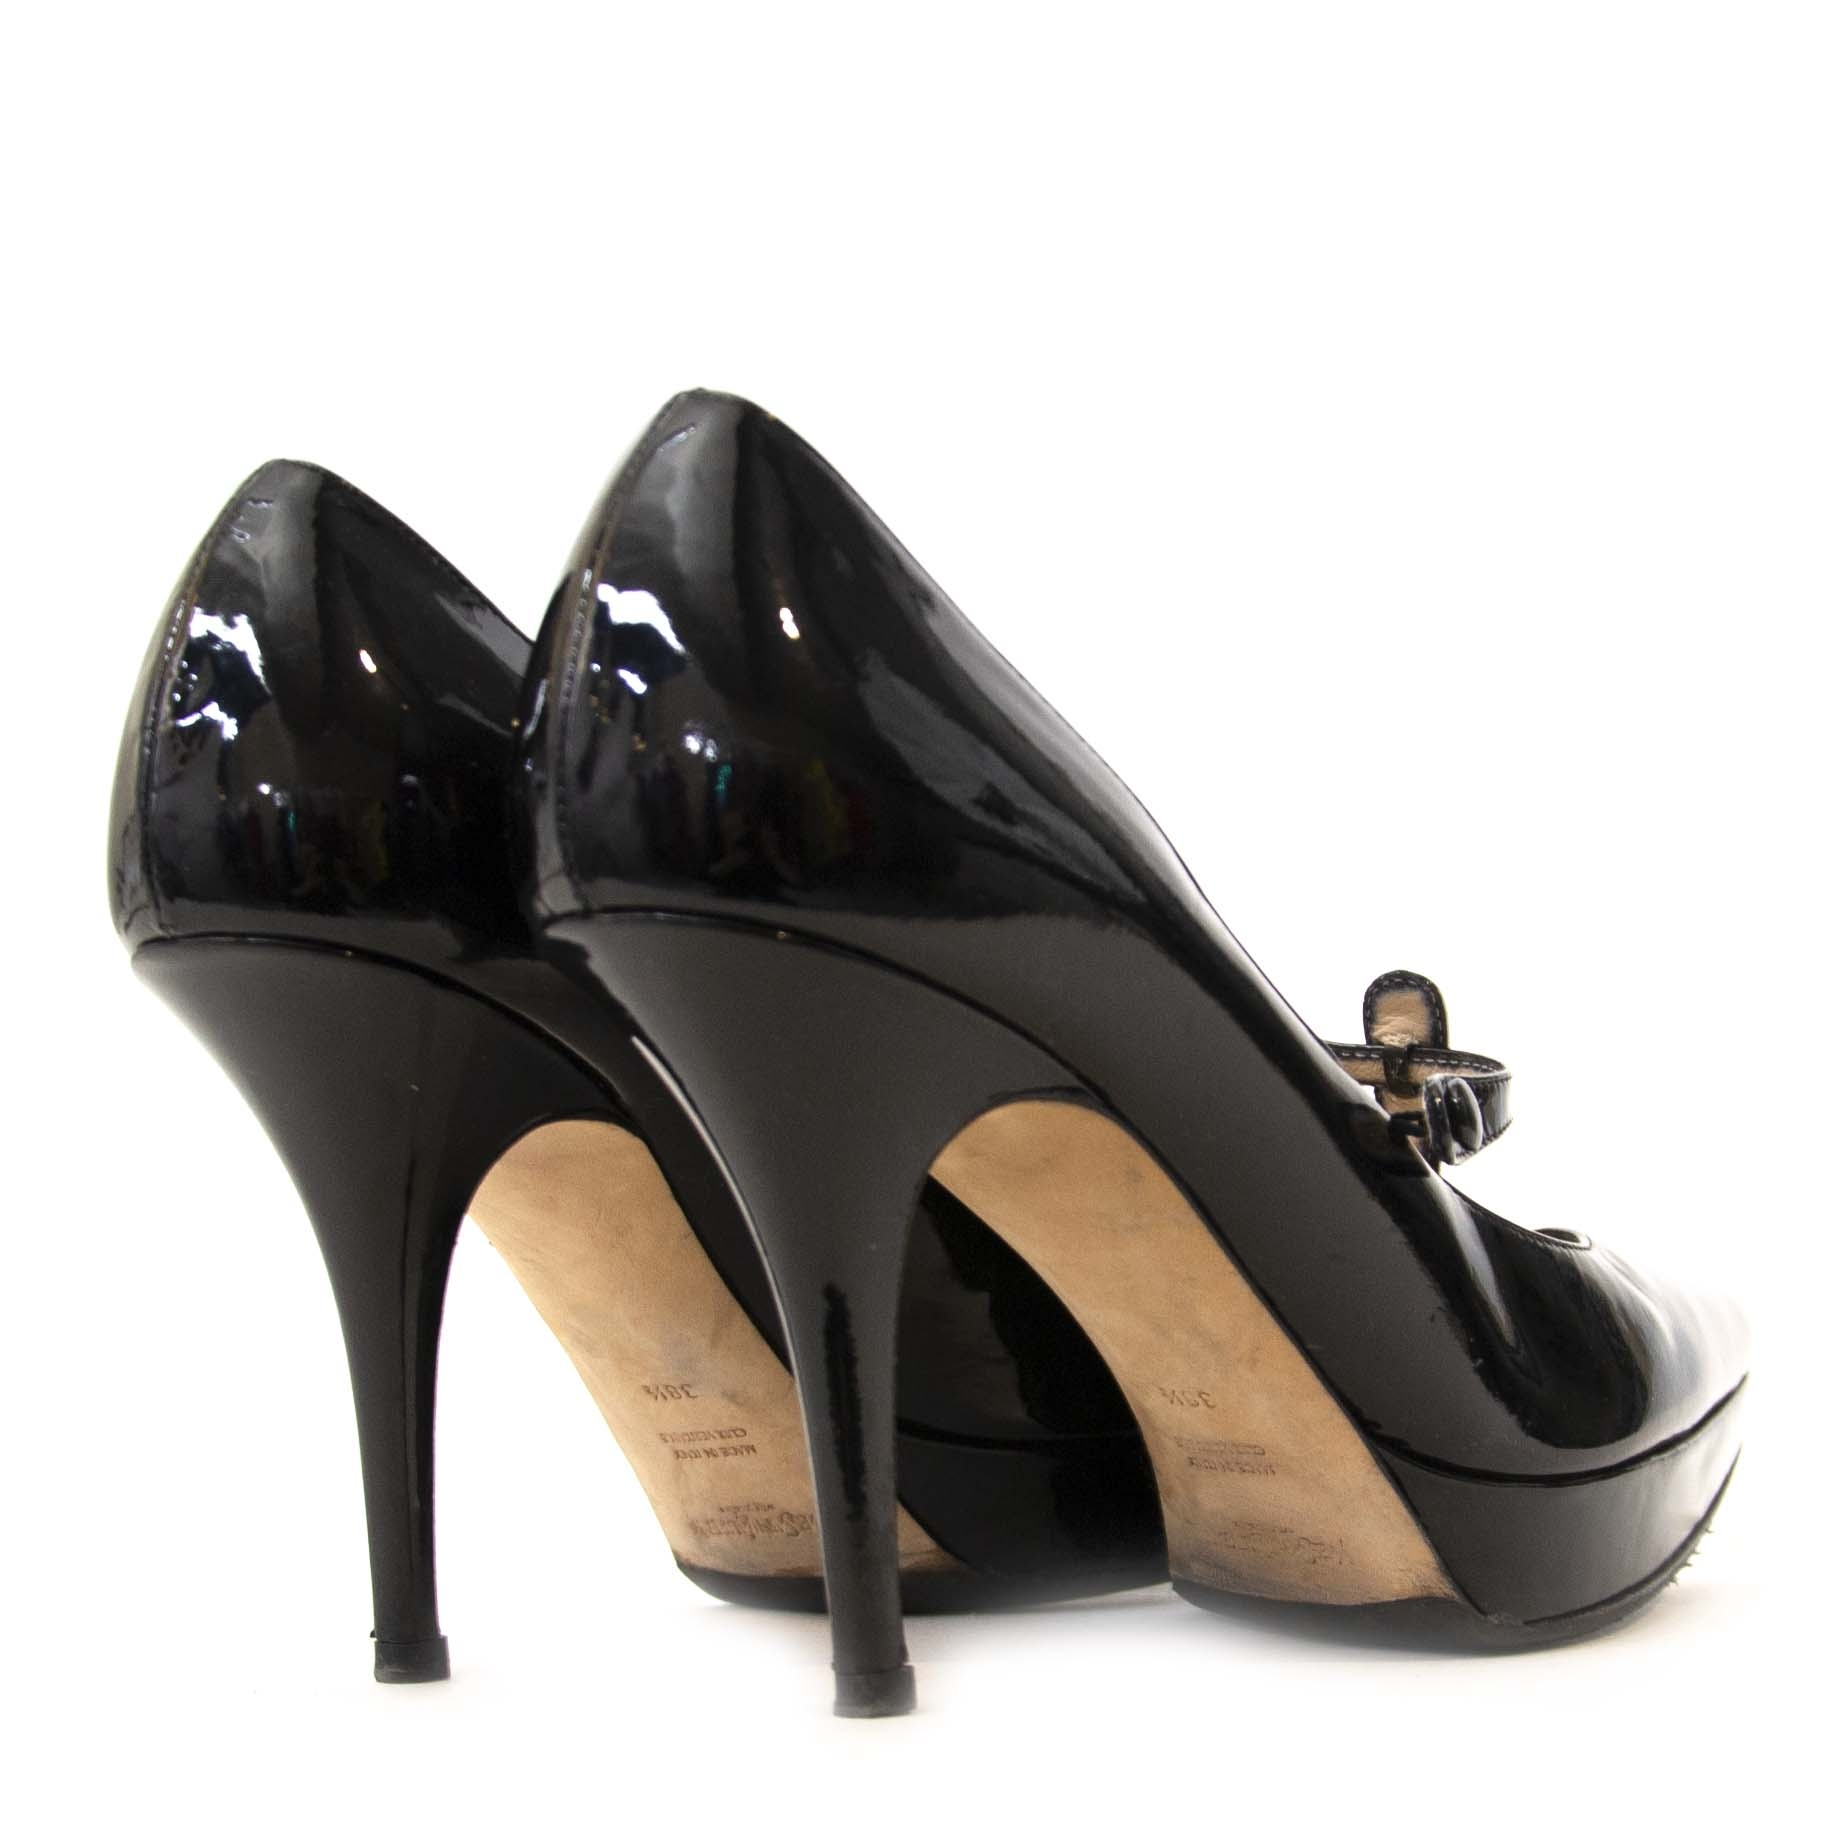 Yves Saint Laurent Patent Black Leather Pumps - Size 38 1/2.Buy authentic secondhand Yves Saint Laurent pumps at Labellov online. Safe and secure shopping. Koop tweedehands Saint Laurent lederen schoenen online. Acheter en ligne des chaussures de YSL.